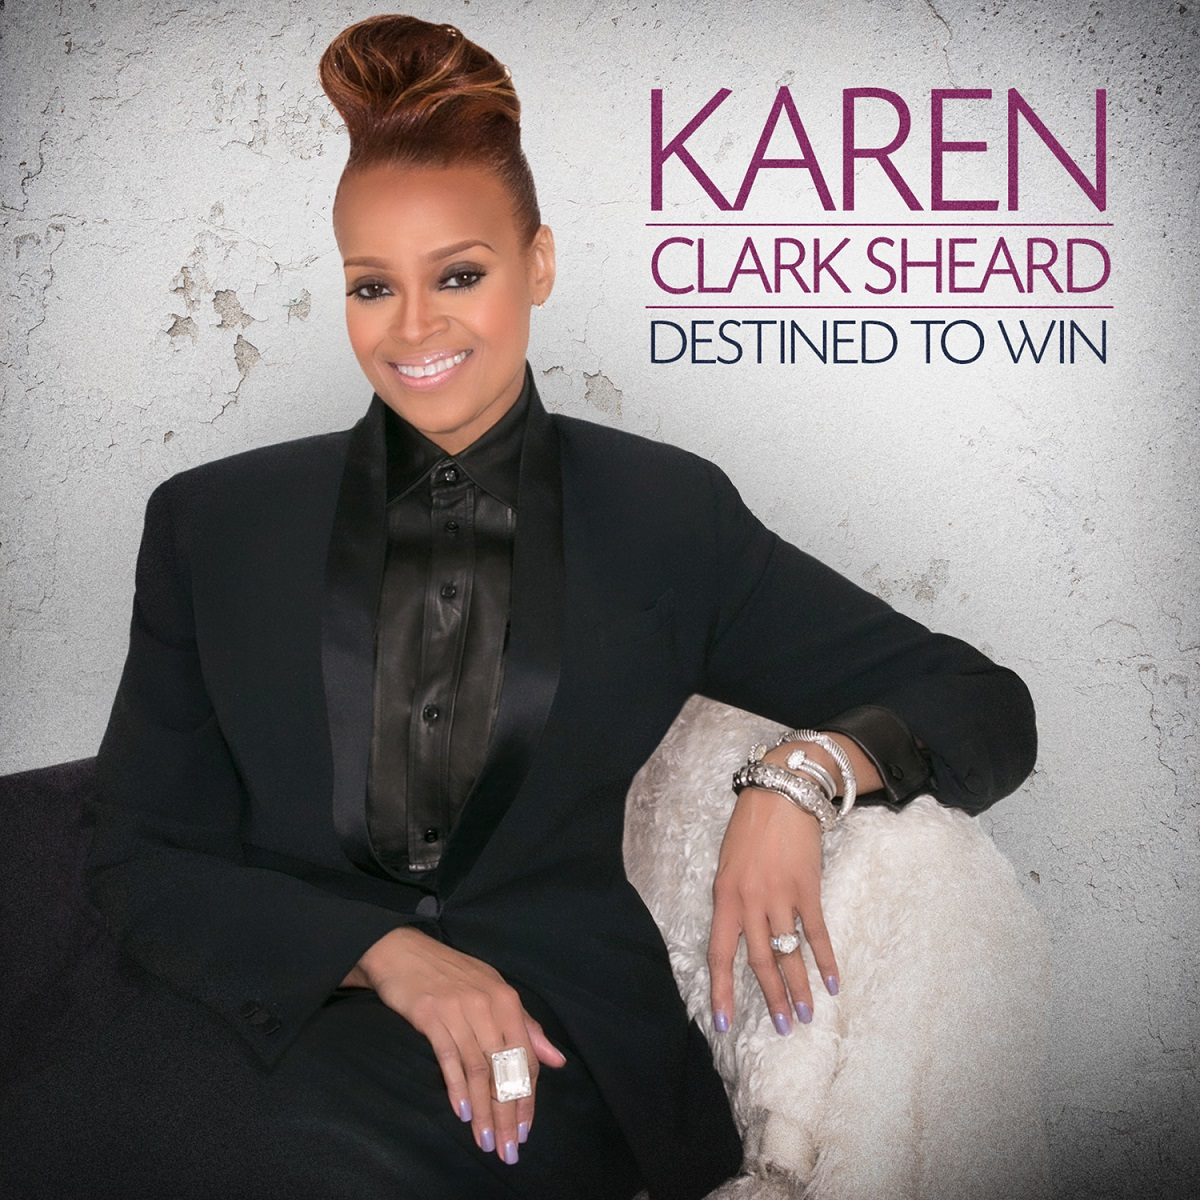 Karen-Clark-Sheard-Destined-To-Win-album-cover